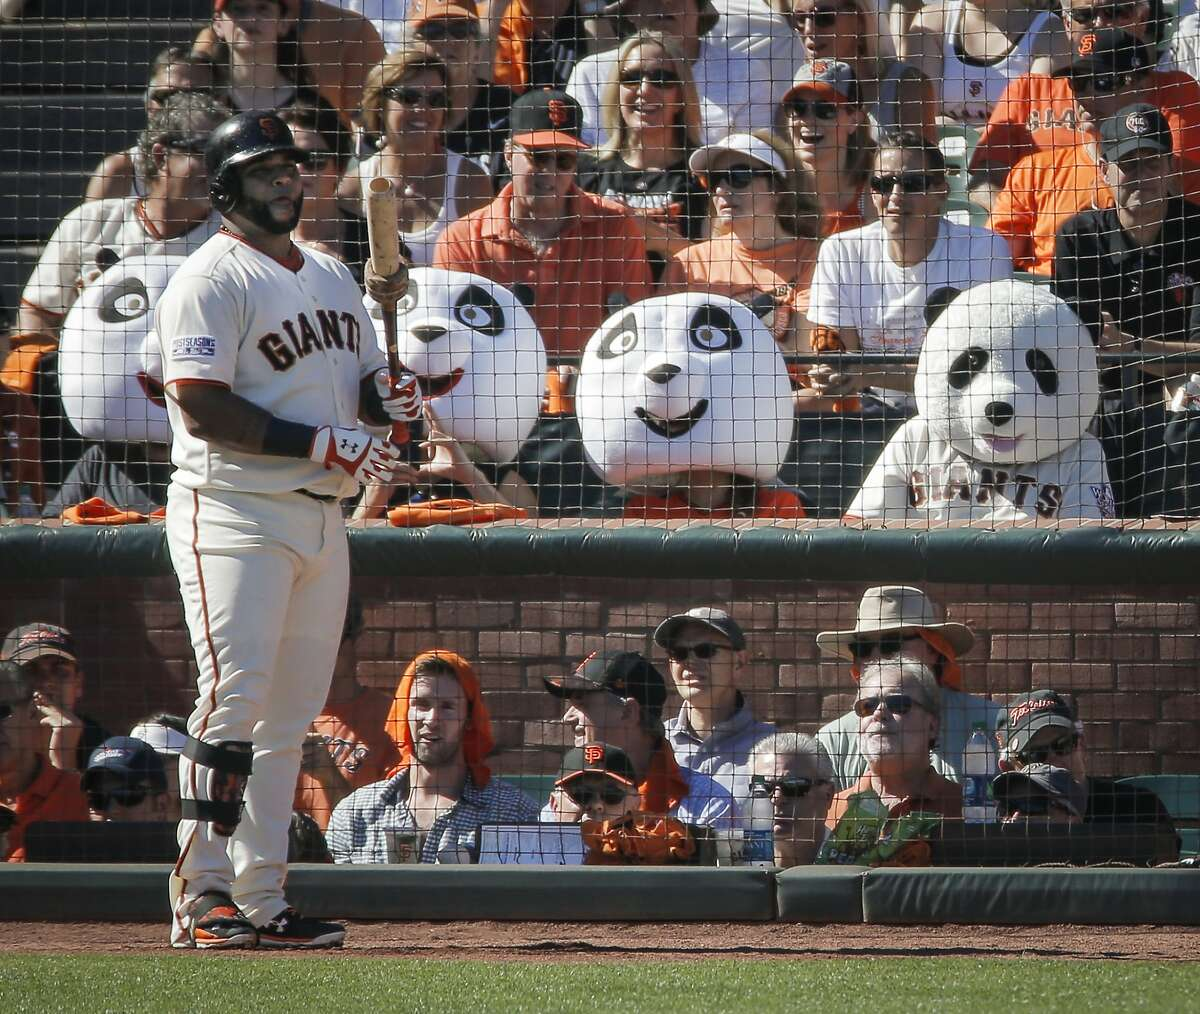 Giants Pablo Sandoval stands in the on deck circle during Game 3 of the NLDS at AT&T Park on Monday, Oct. 6, 2014 in San Francisco, Calif.